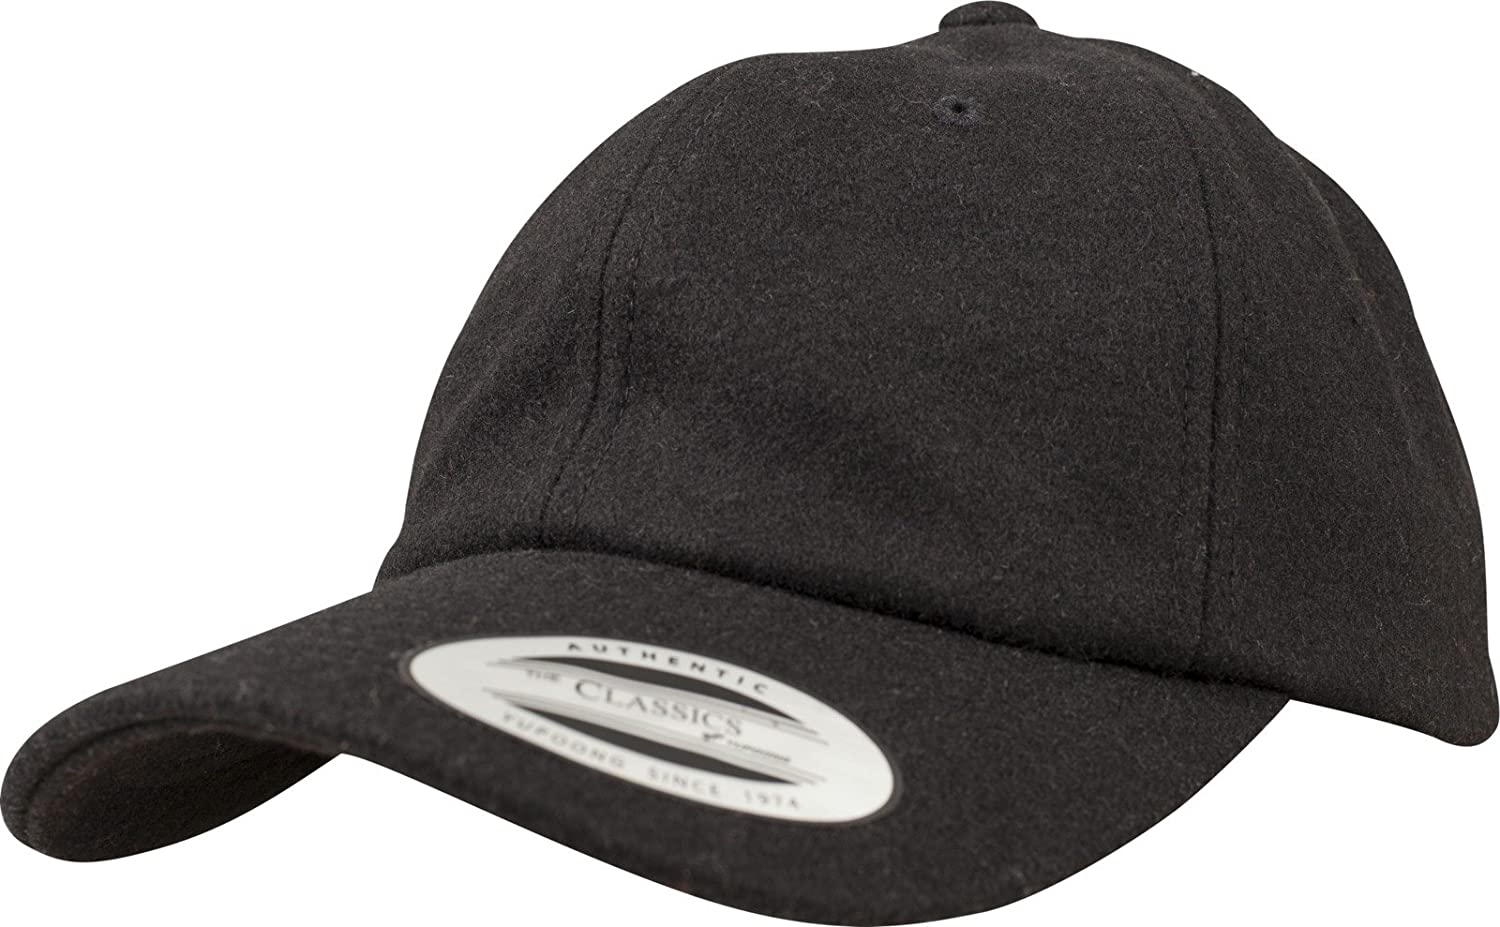 3e13131df9a85 Flexfit Low Profile Melton Wool Strapback DAD Cap - Black - One Size at  Amazon Men s Clothing store